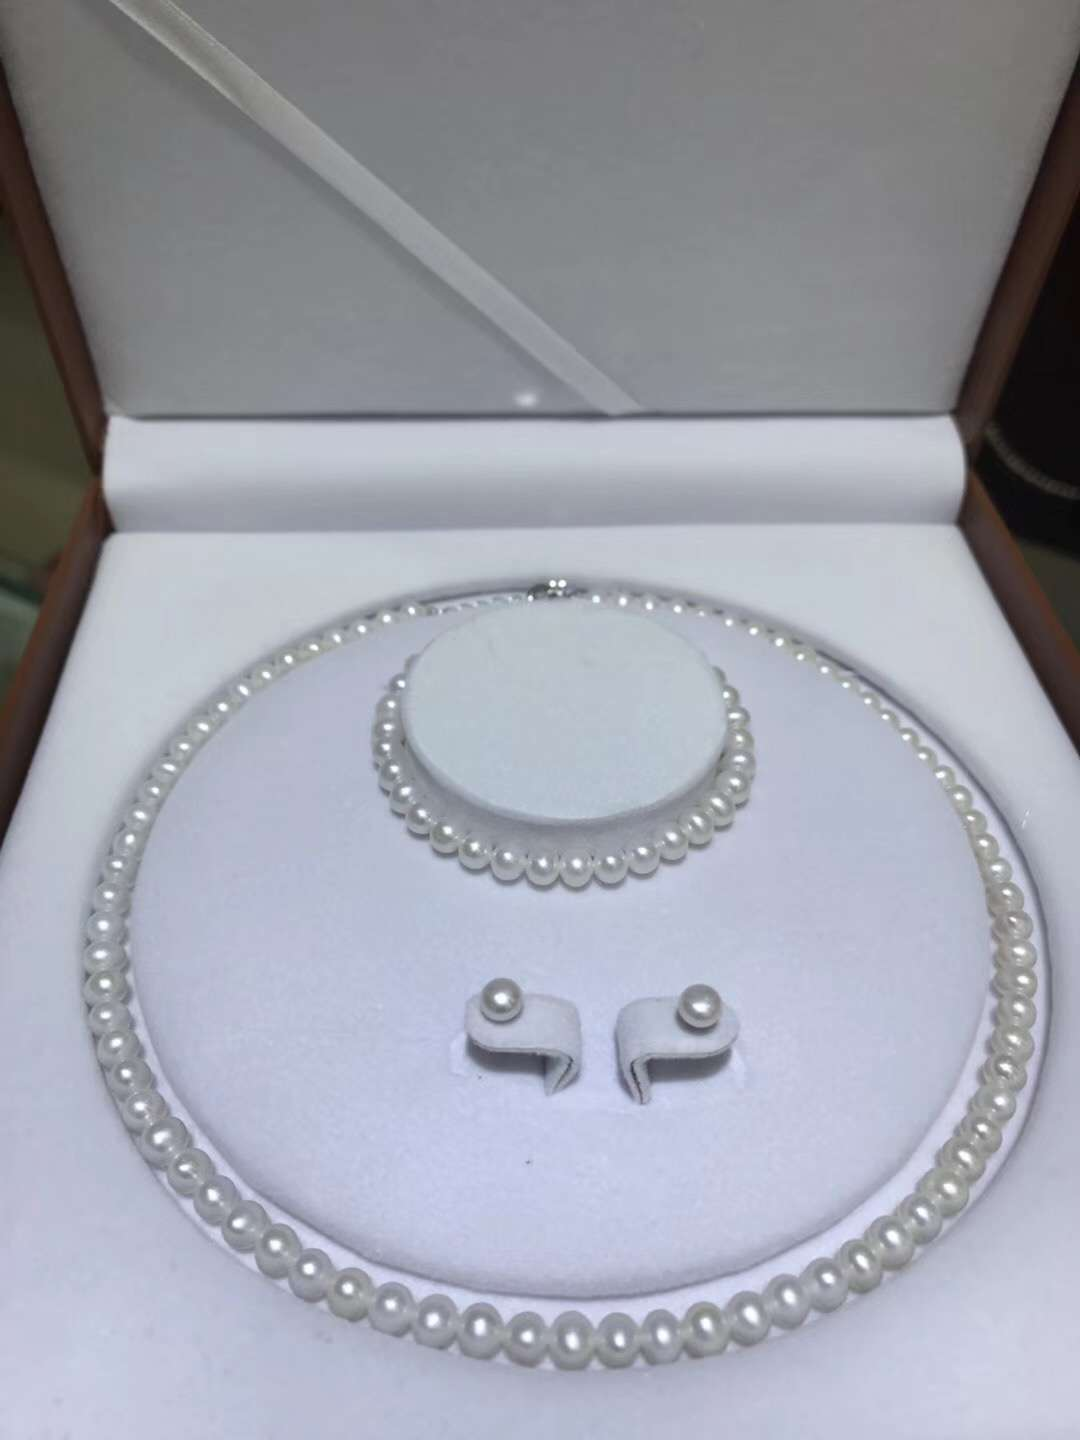 New Exquisite Pearl 5 Mm Adjustable Button Hoop 925 Sterling Silver Earrings Sets with Gift Box Women Jewelry